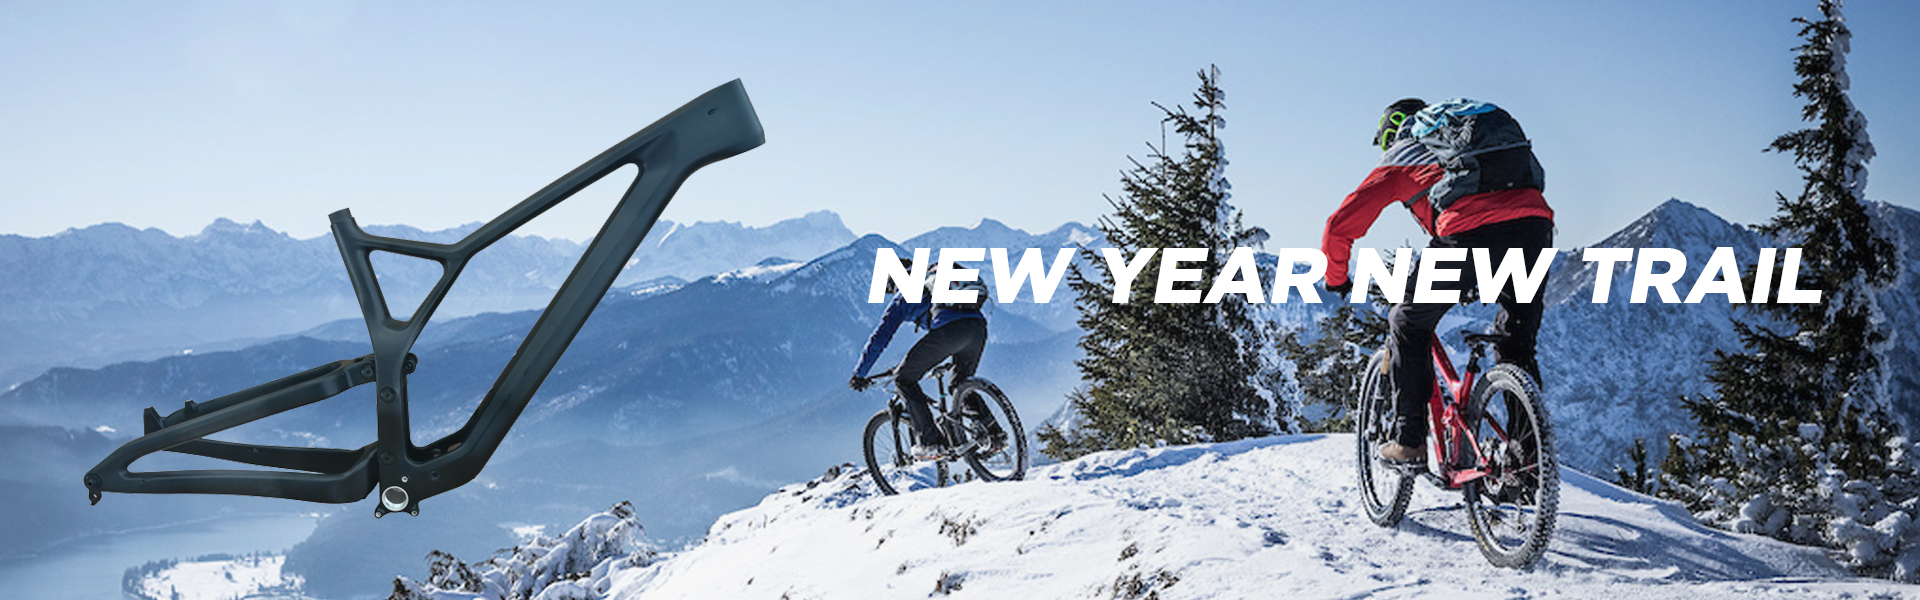 New Year New trail